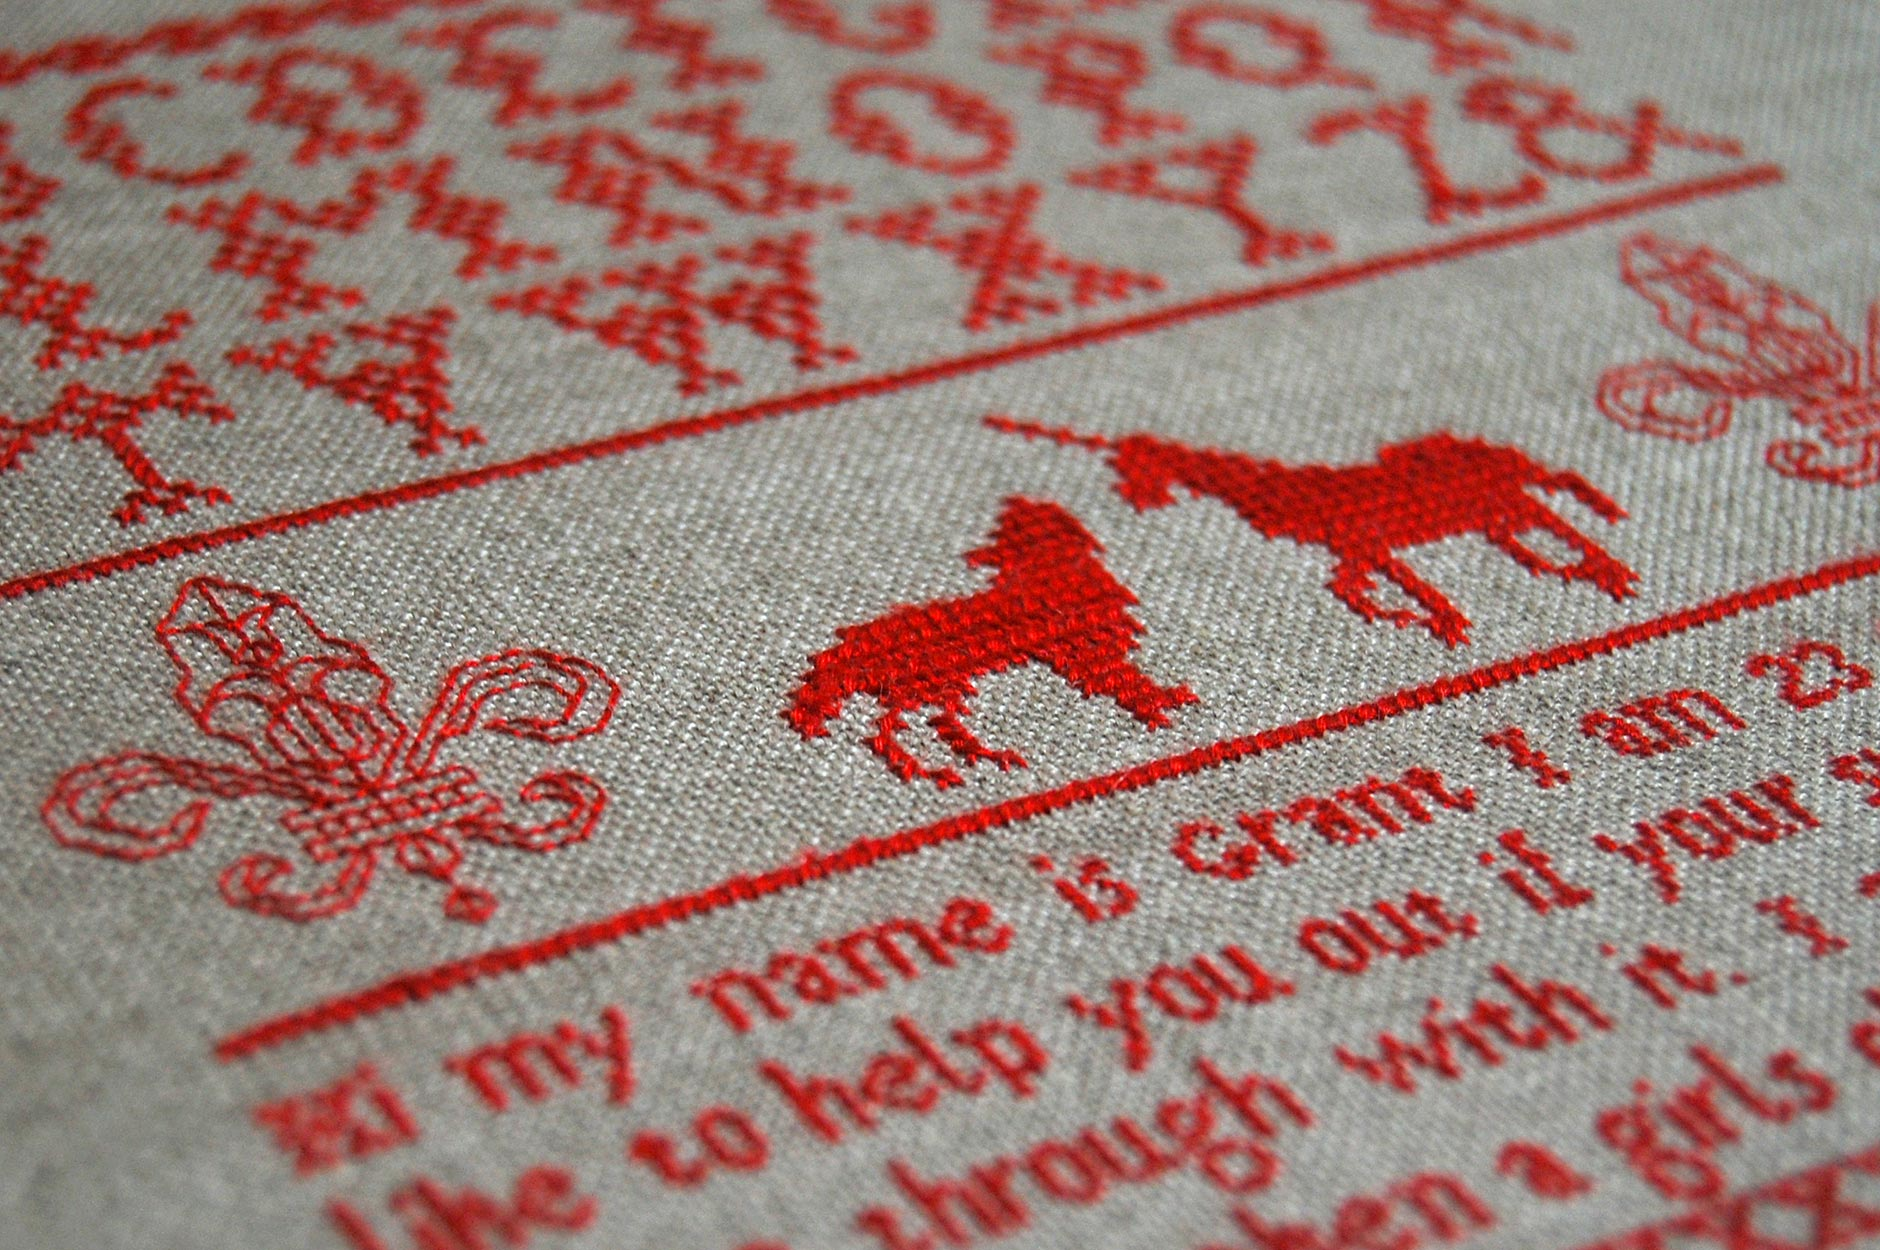 The Hunt for the Unicorn | Subversive Cross Stitch by Spike Dennis